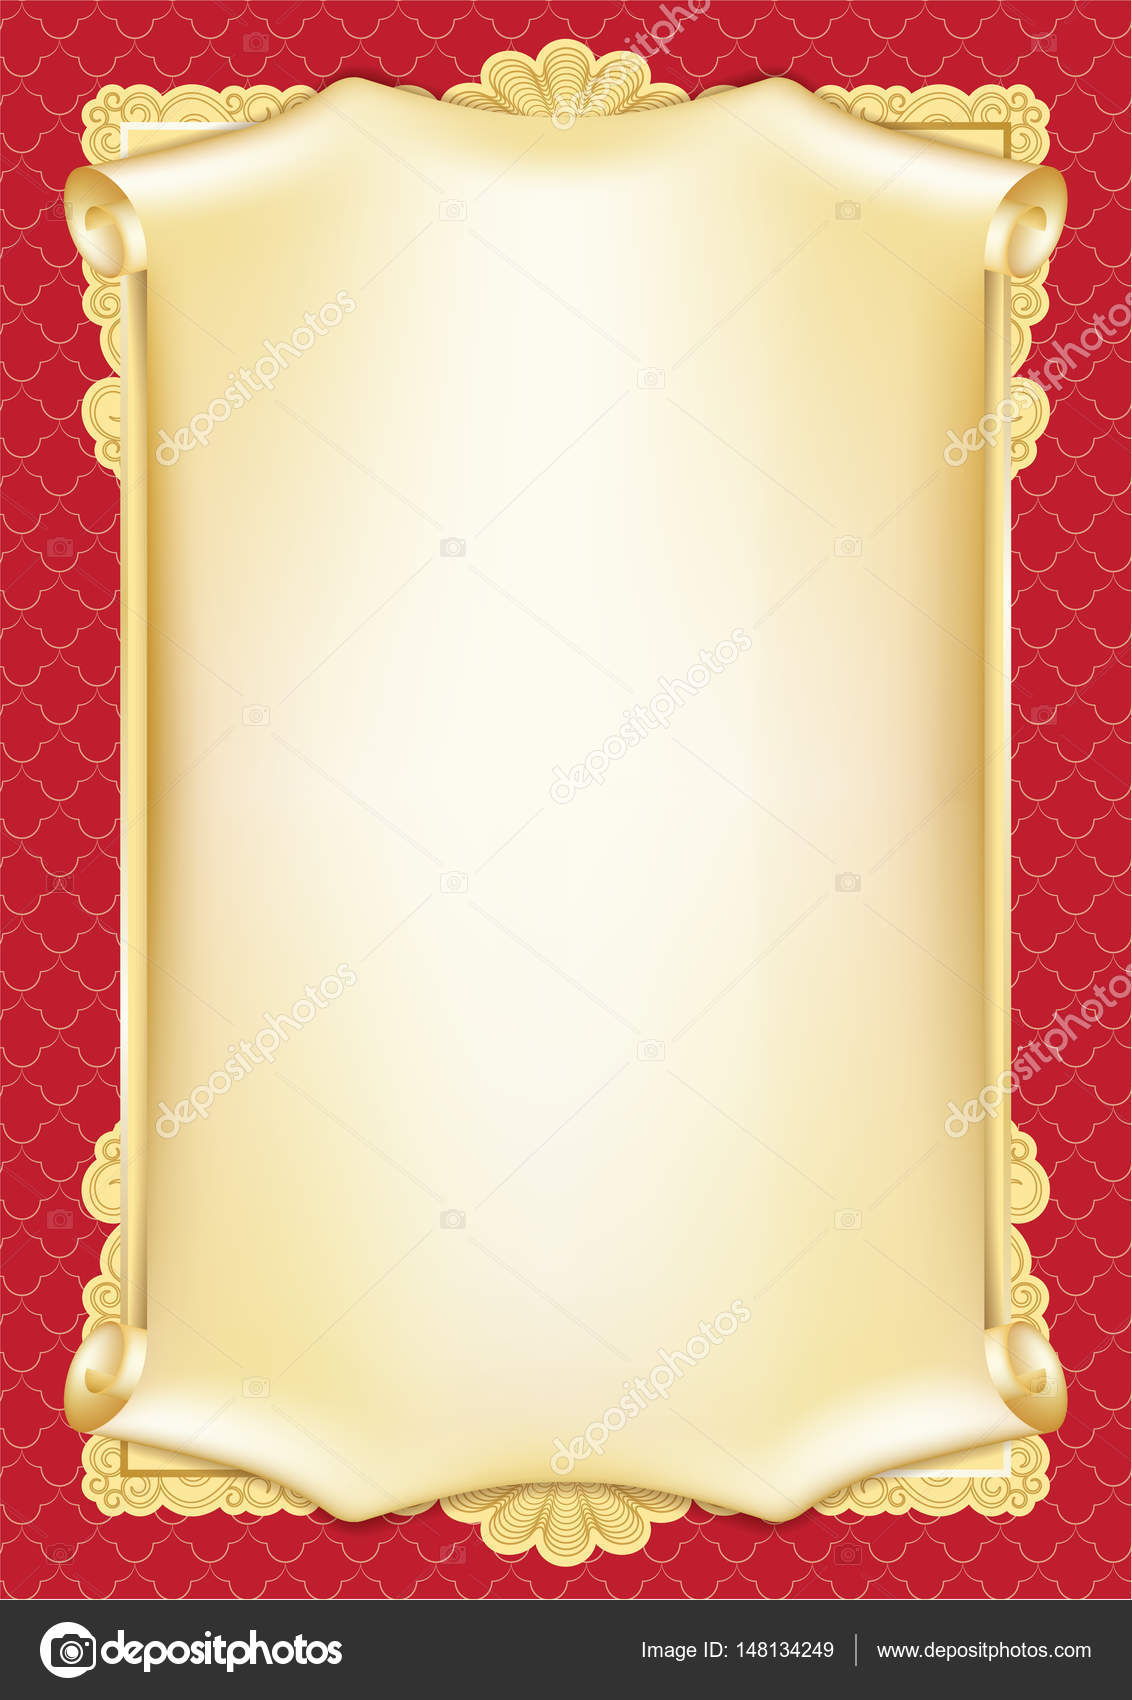 Template For Diploma, Certificate, Card With Scroll And Throughout Certificate Scroll Template